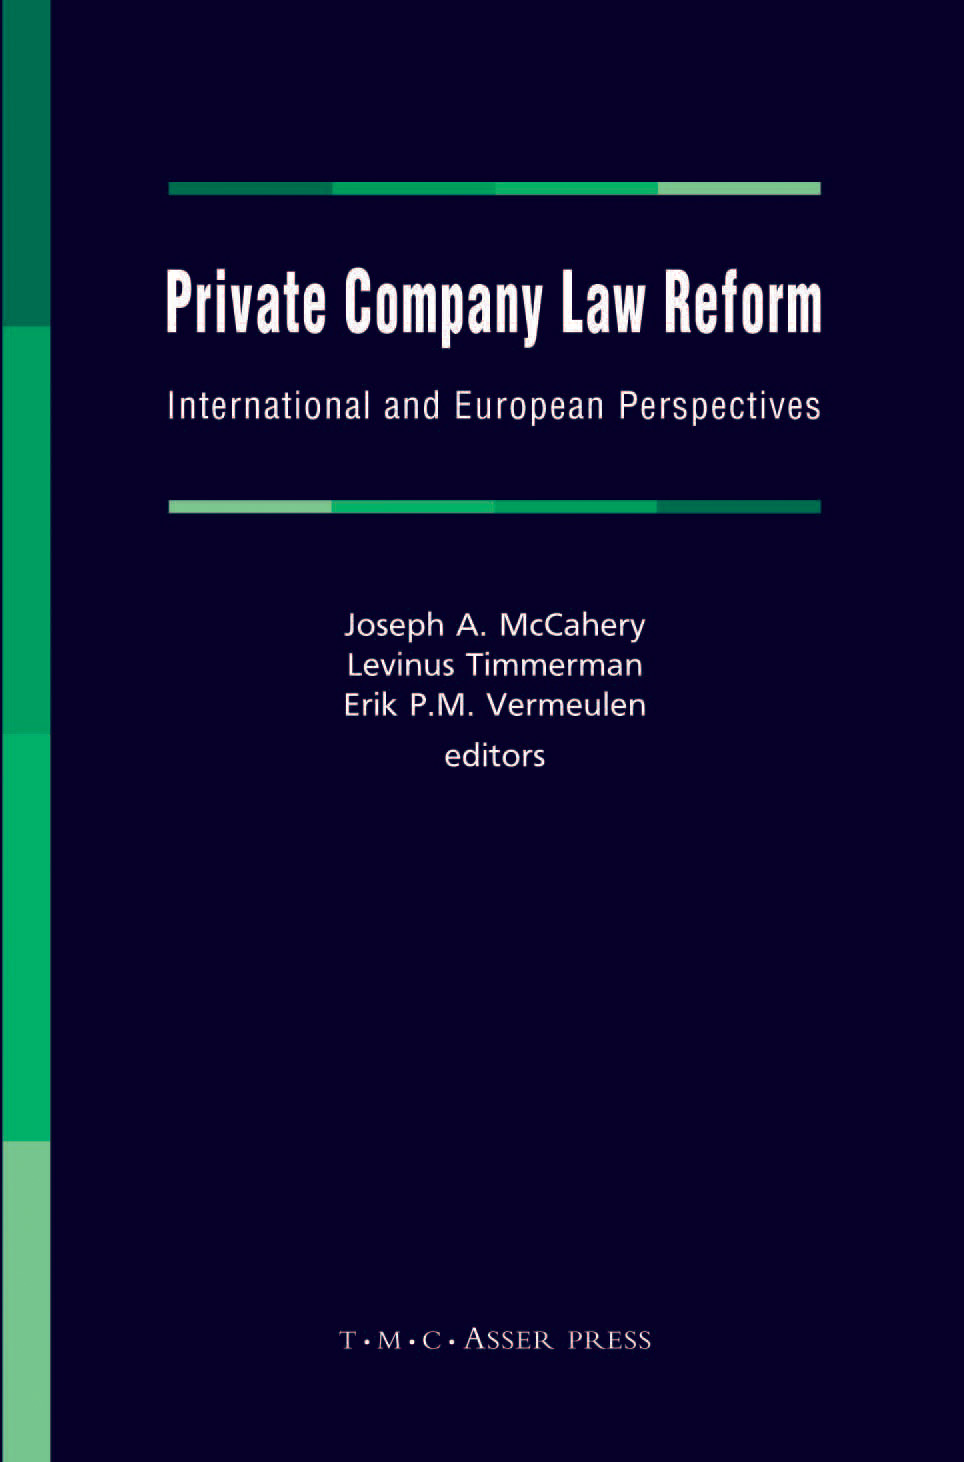 Private Company Law Reform - International and European Perspectives